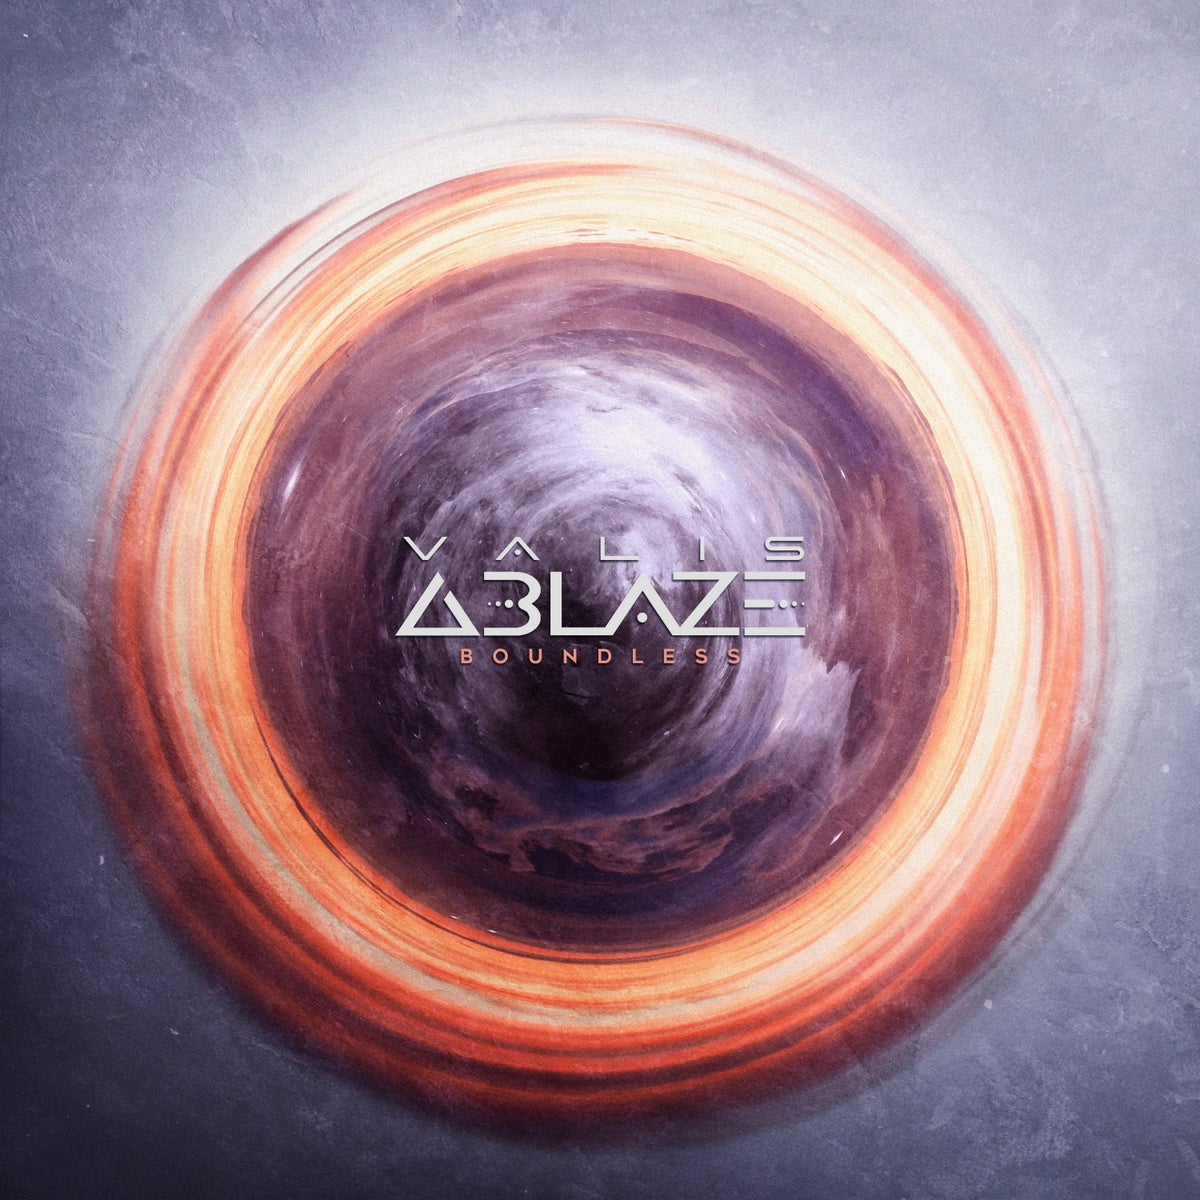 "Image of Valis Ablaze ""Boundless"" CD"